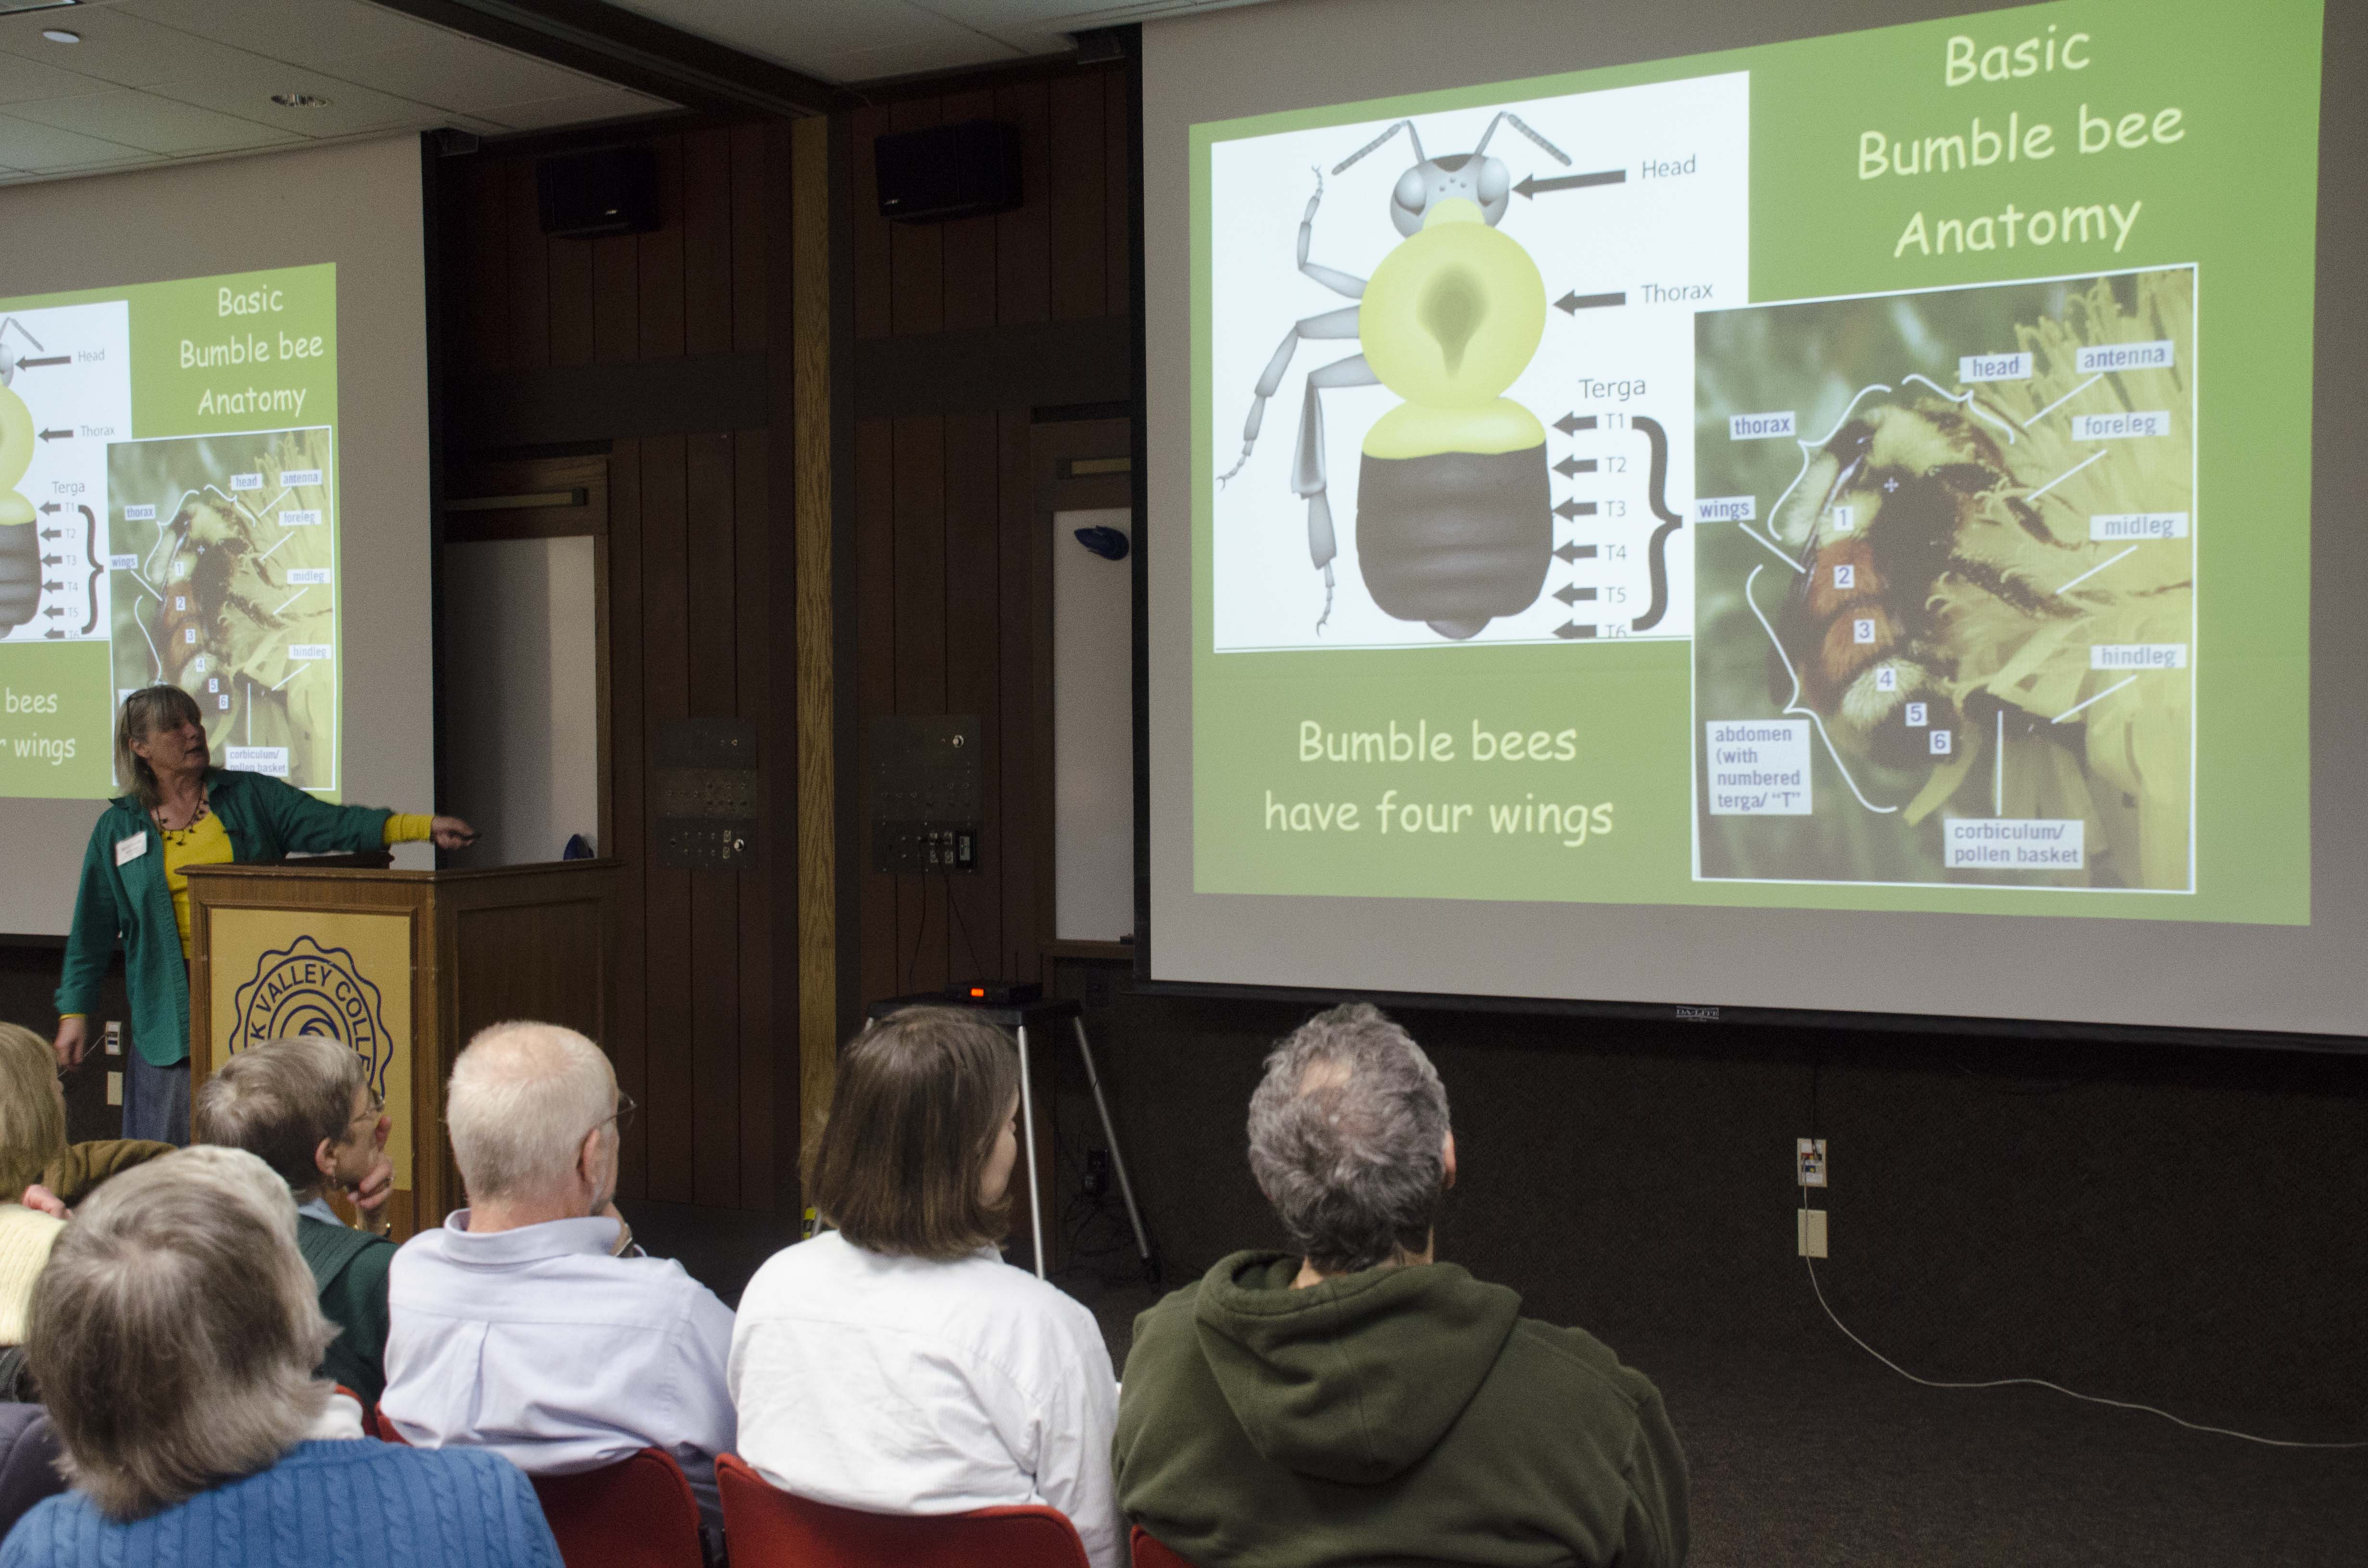 Barbara Williams'presentation about bumblebees.